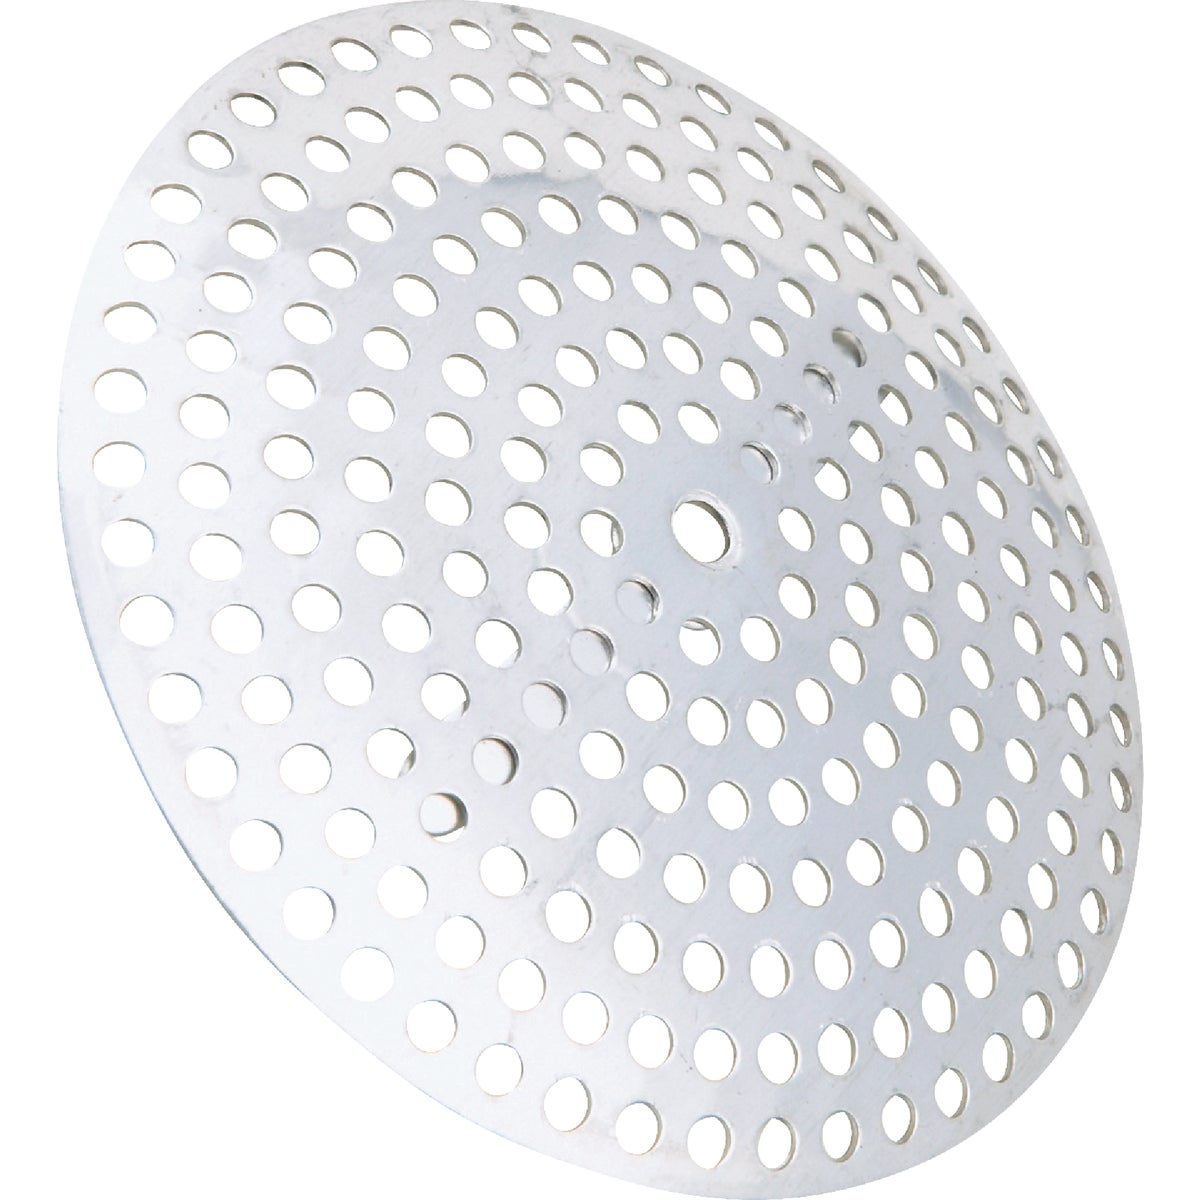 DRAIN STRAINER - 415562 by Do it Best